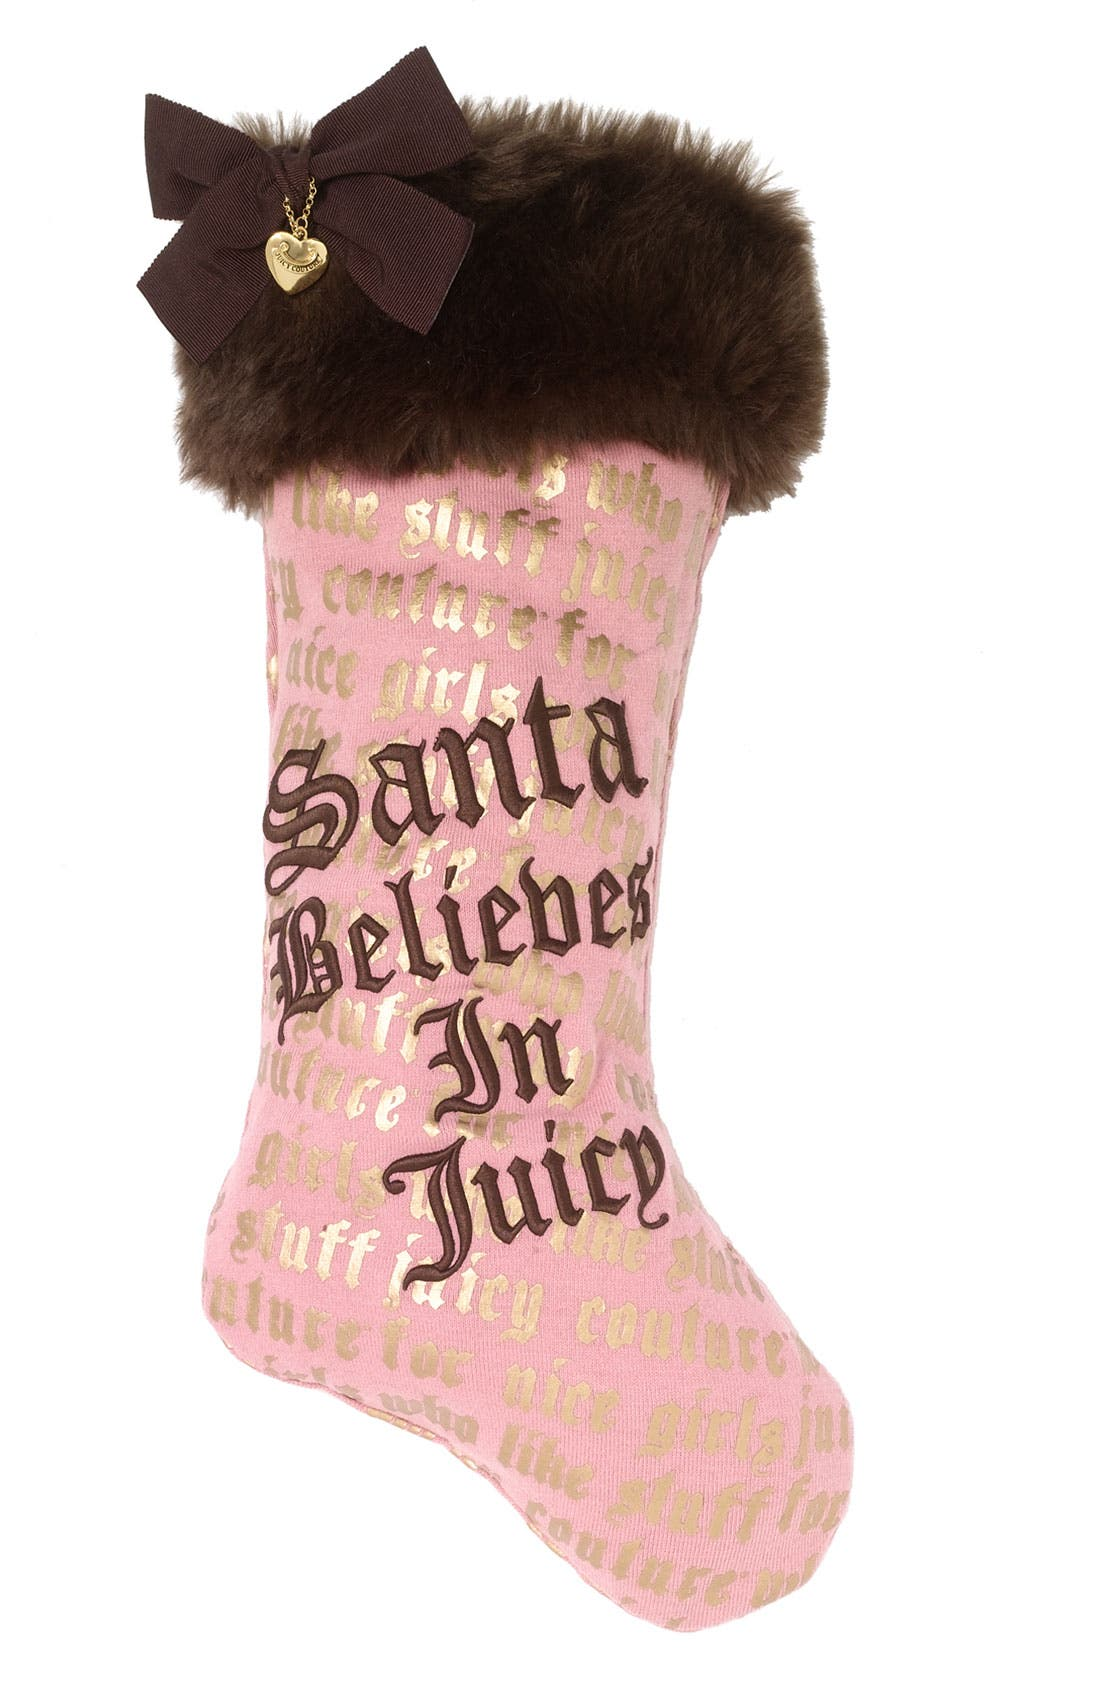 Main Image - Juicy Couture 'Santa Believes in Juicy' Holiday Stocking